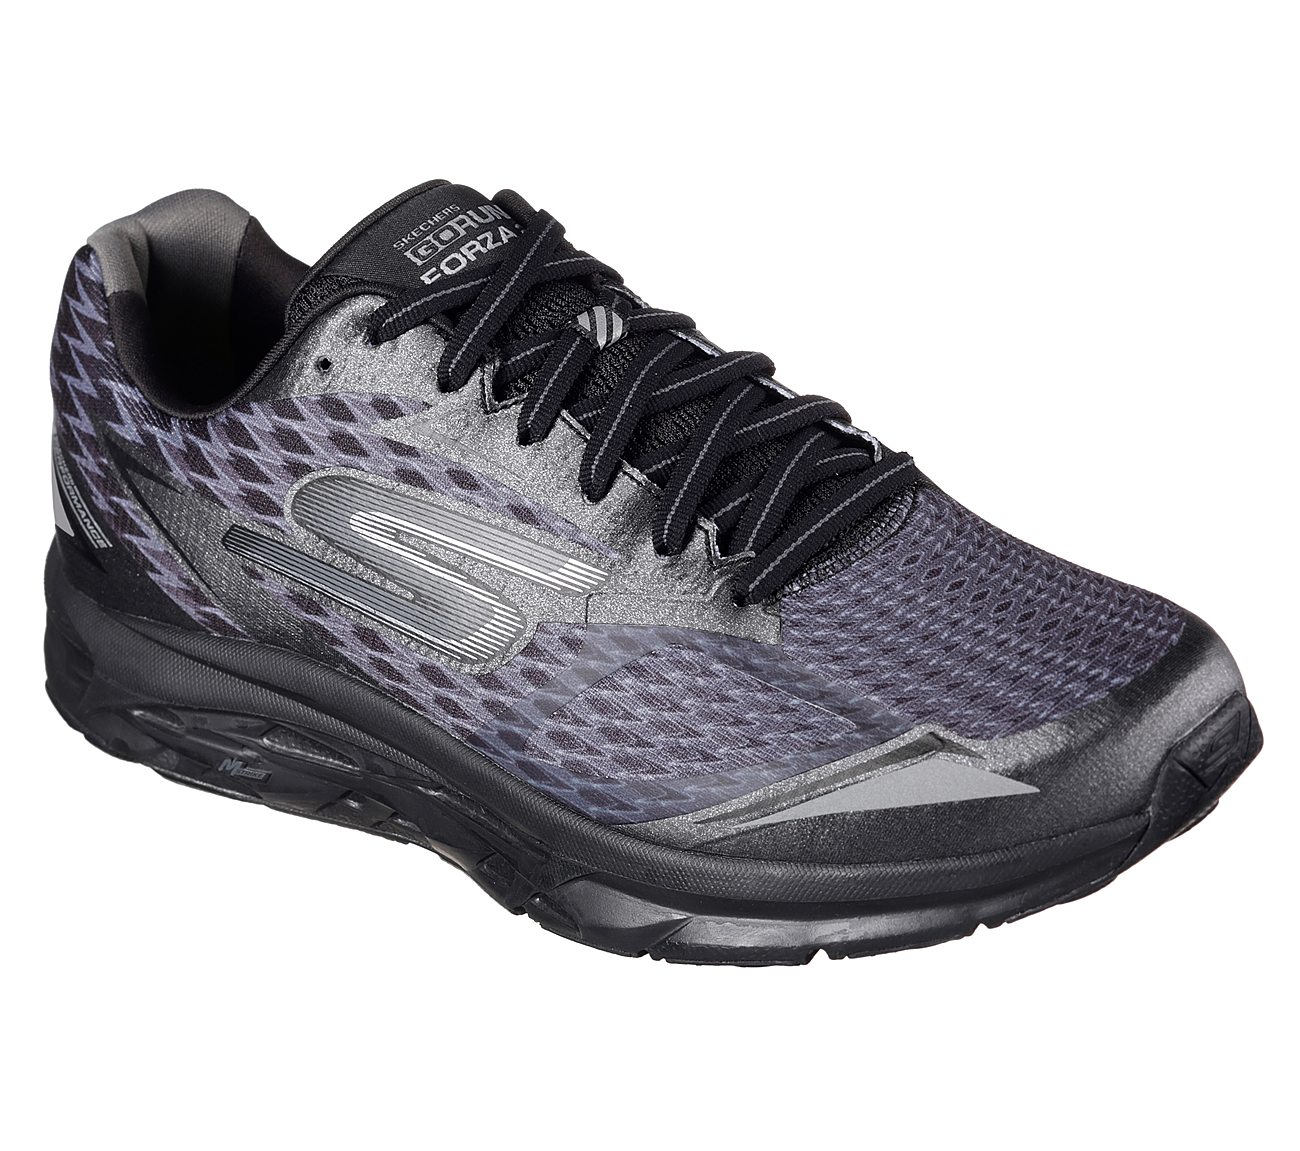 Skechers GOrun Forza 2. $115.00. Hover to zoom. BLACK